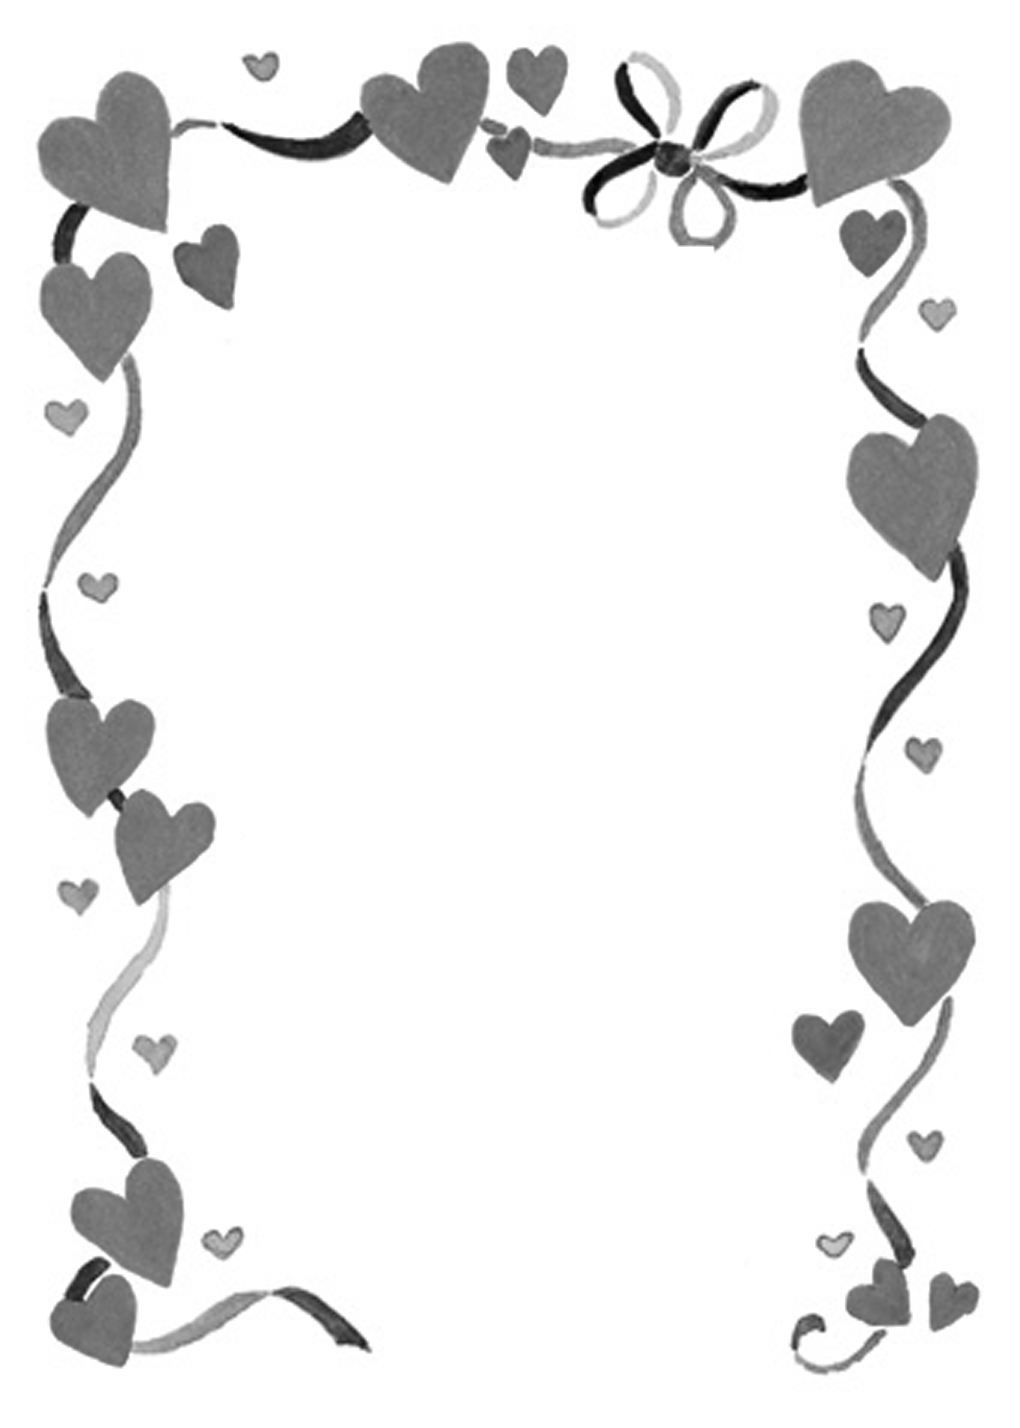 Border clipart marriage, Picture #116128 border clipart marriage.